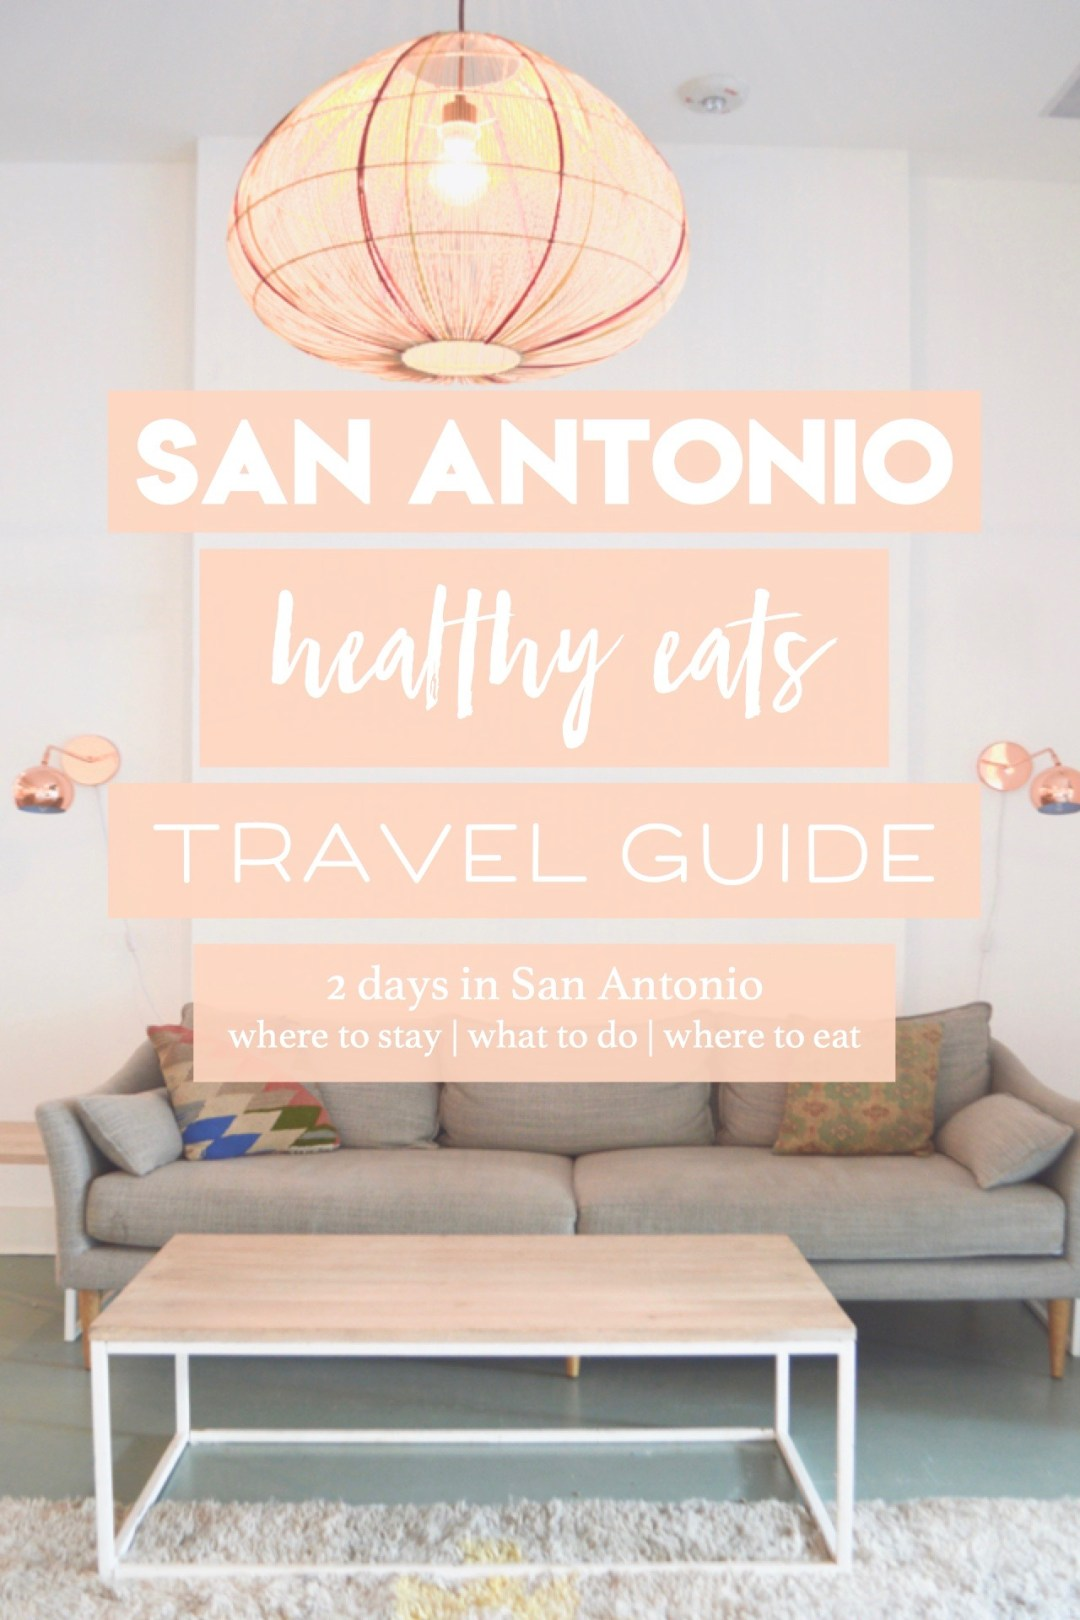 San Antonio healthy travel guide | where to stay, where to eat, what to do | gluten free, vegan, paleo, healthy restaurants